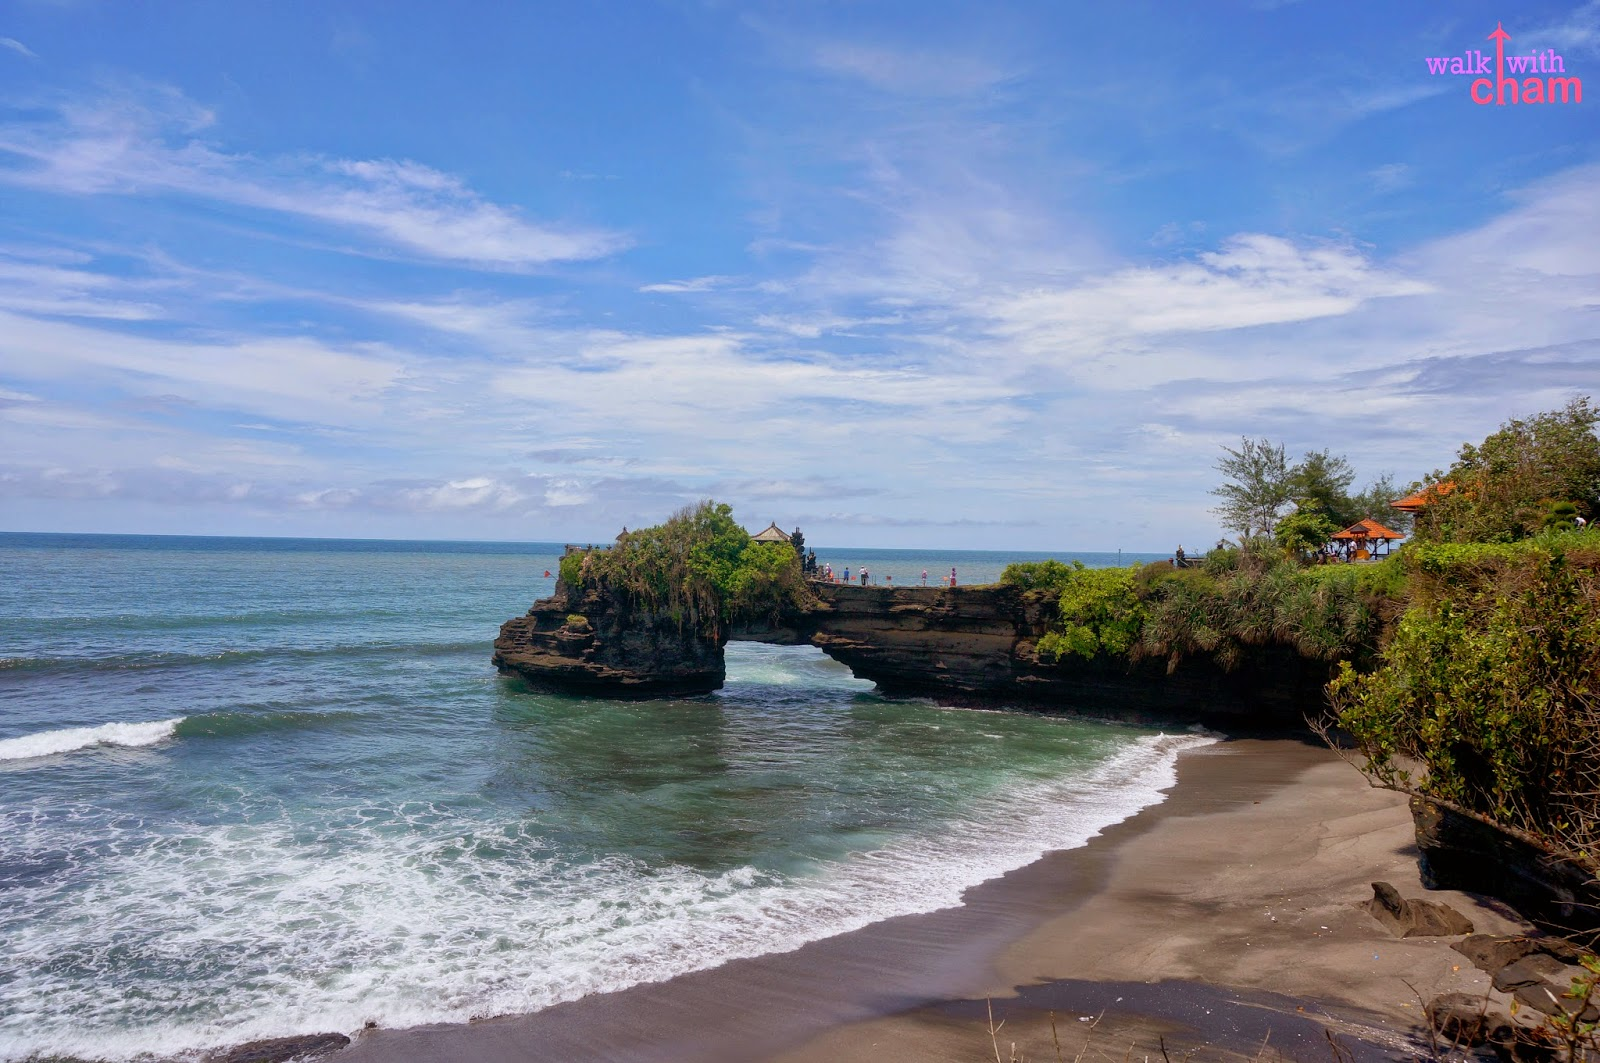 tanah lot Tanah lot temple bali, everything about tanah lot bali - indonesia, the best time to visit and experience the beautiful view of tanah lot sunset.